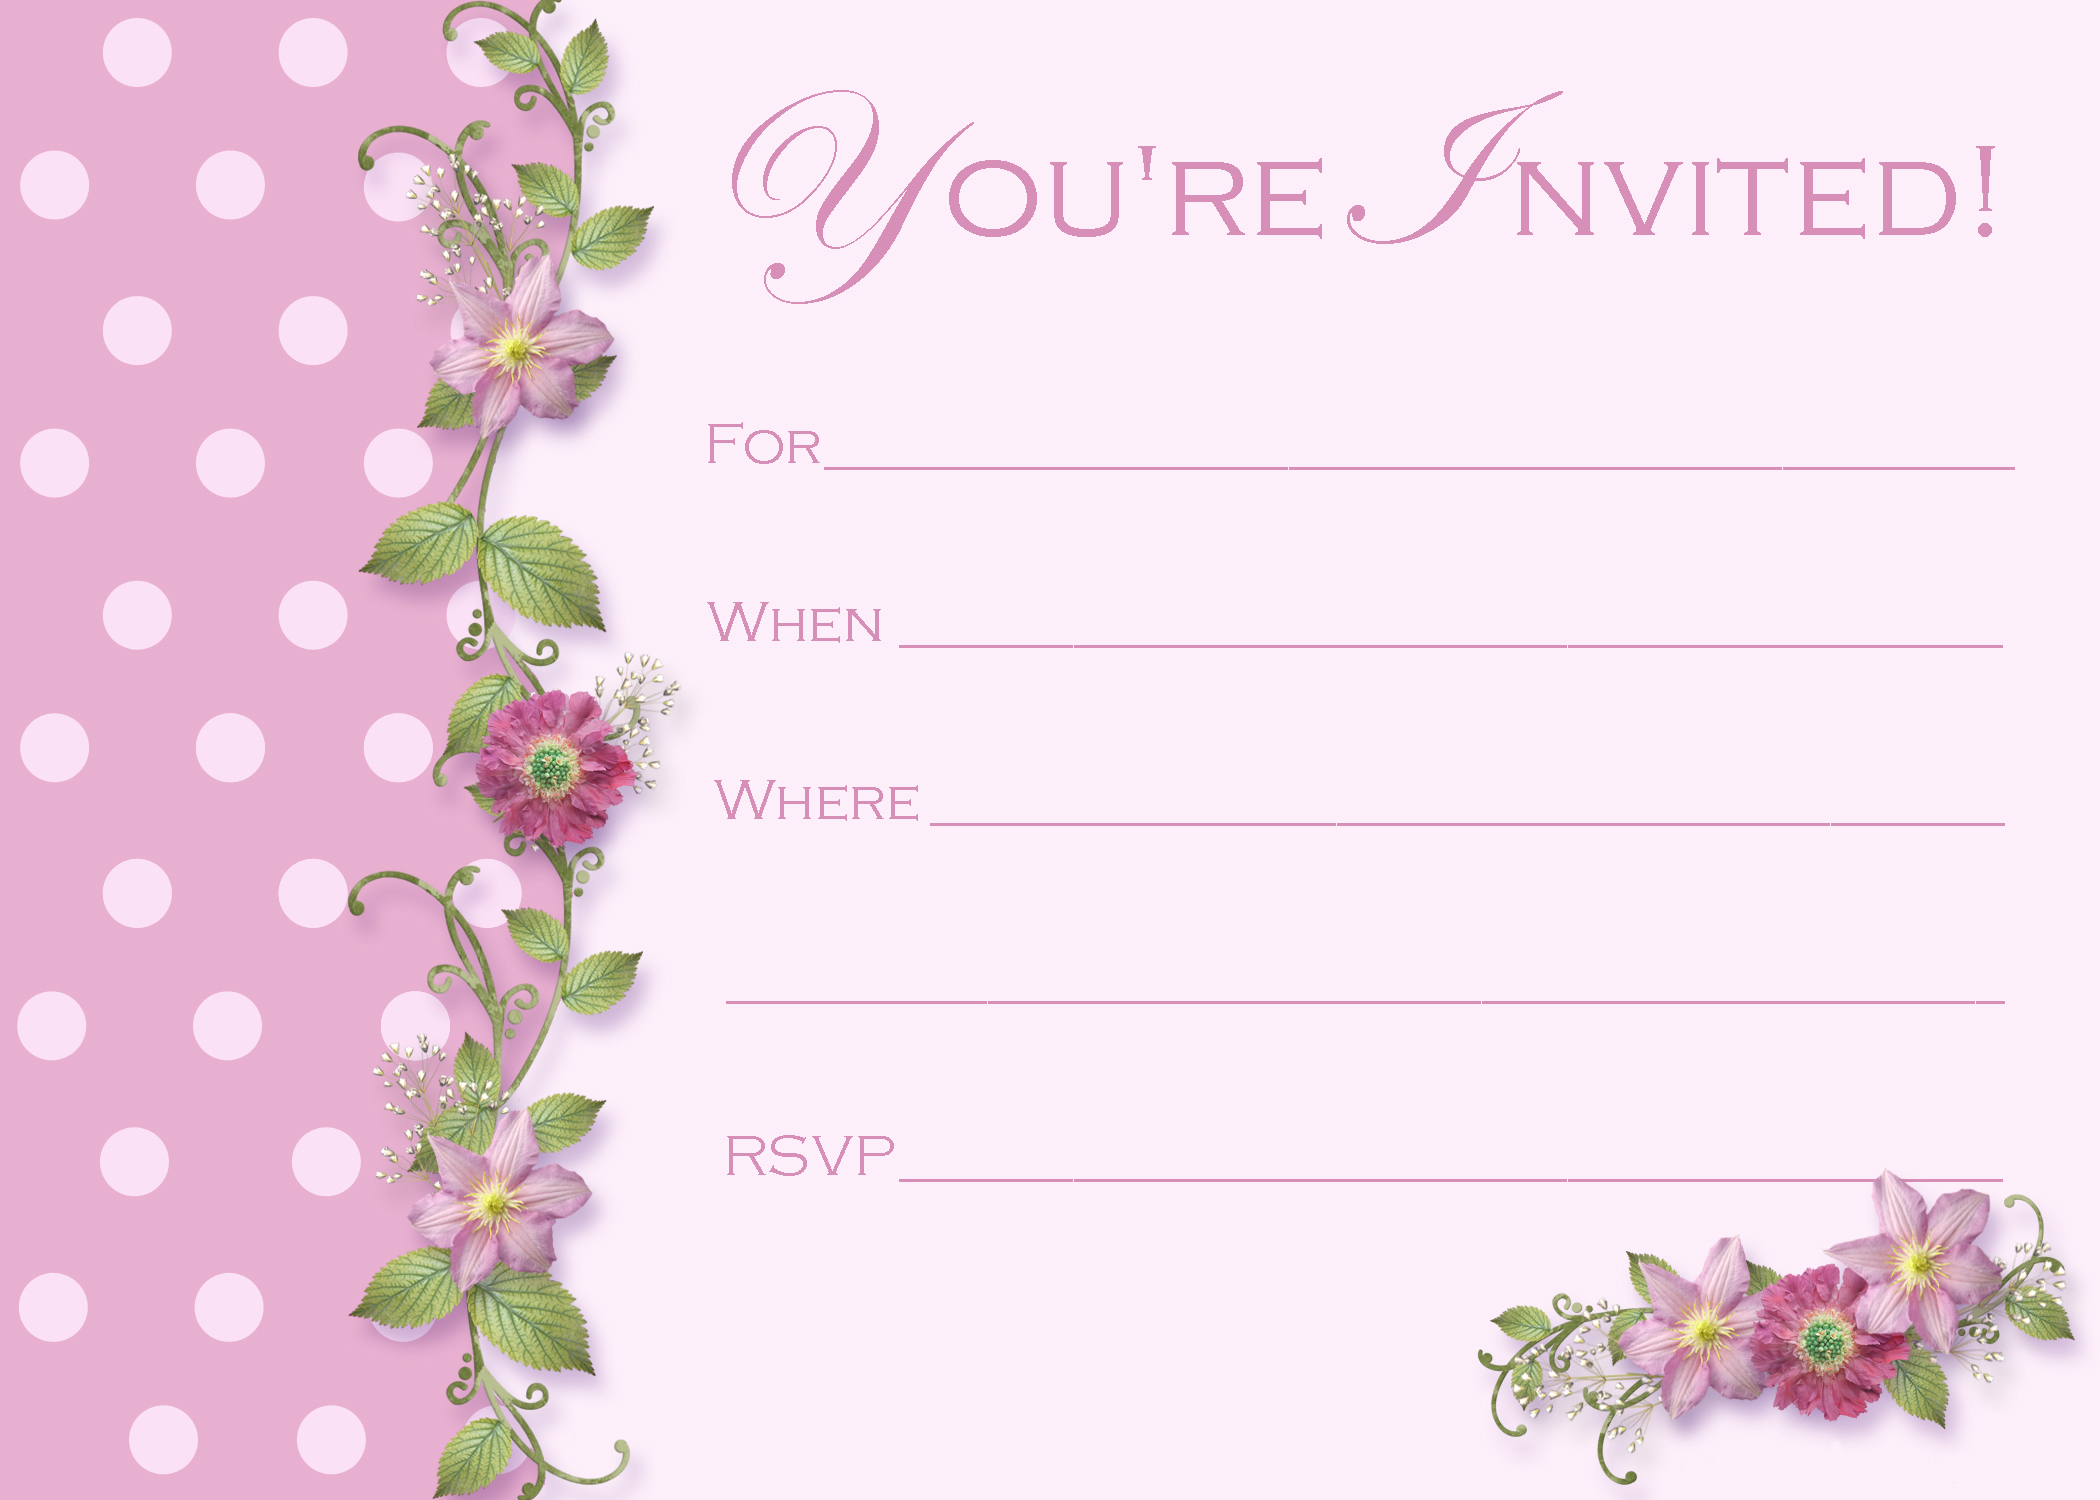 Invitation Cards Australia Wedding Party